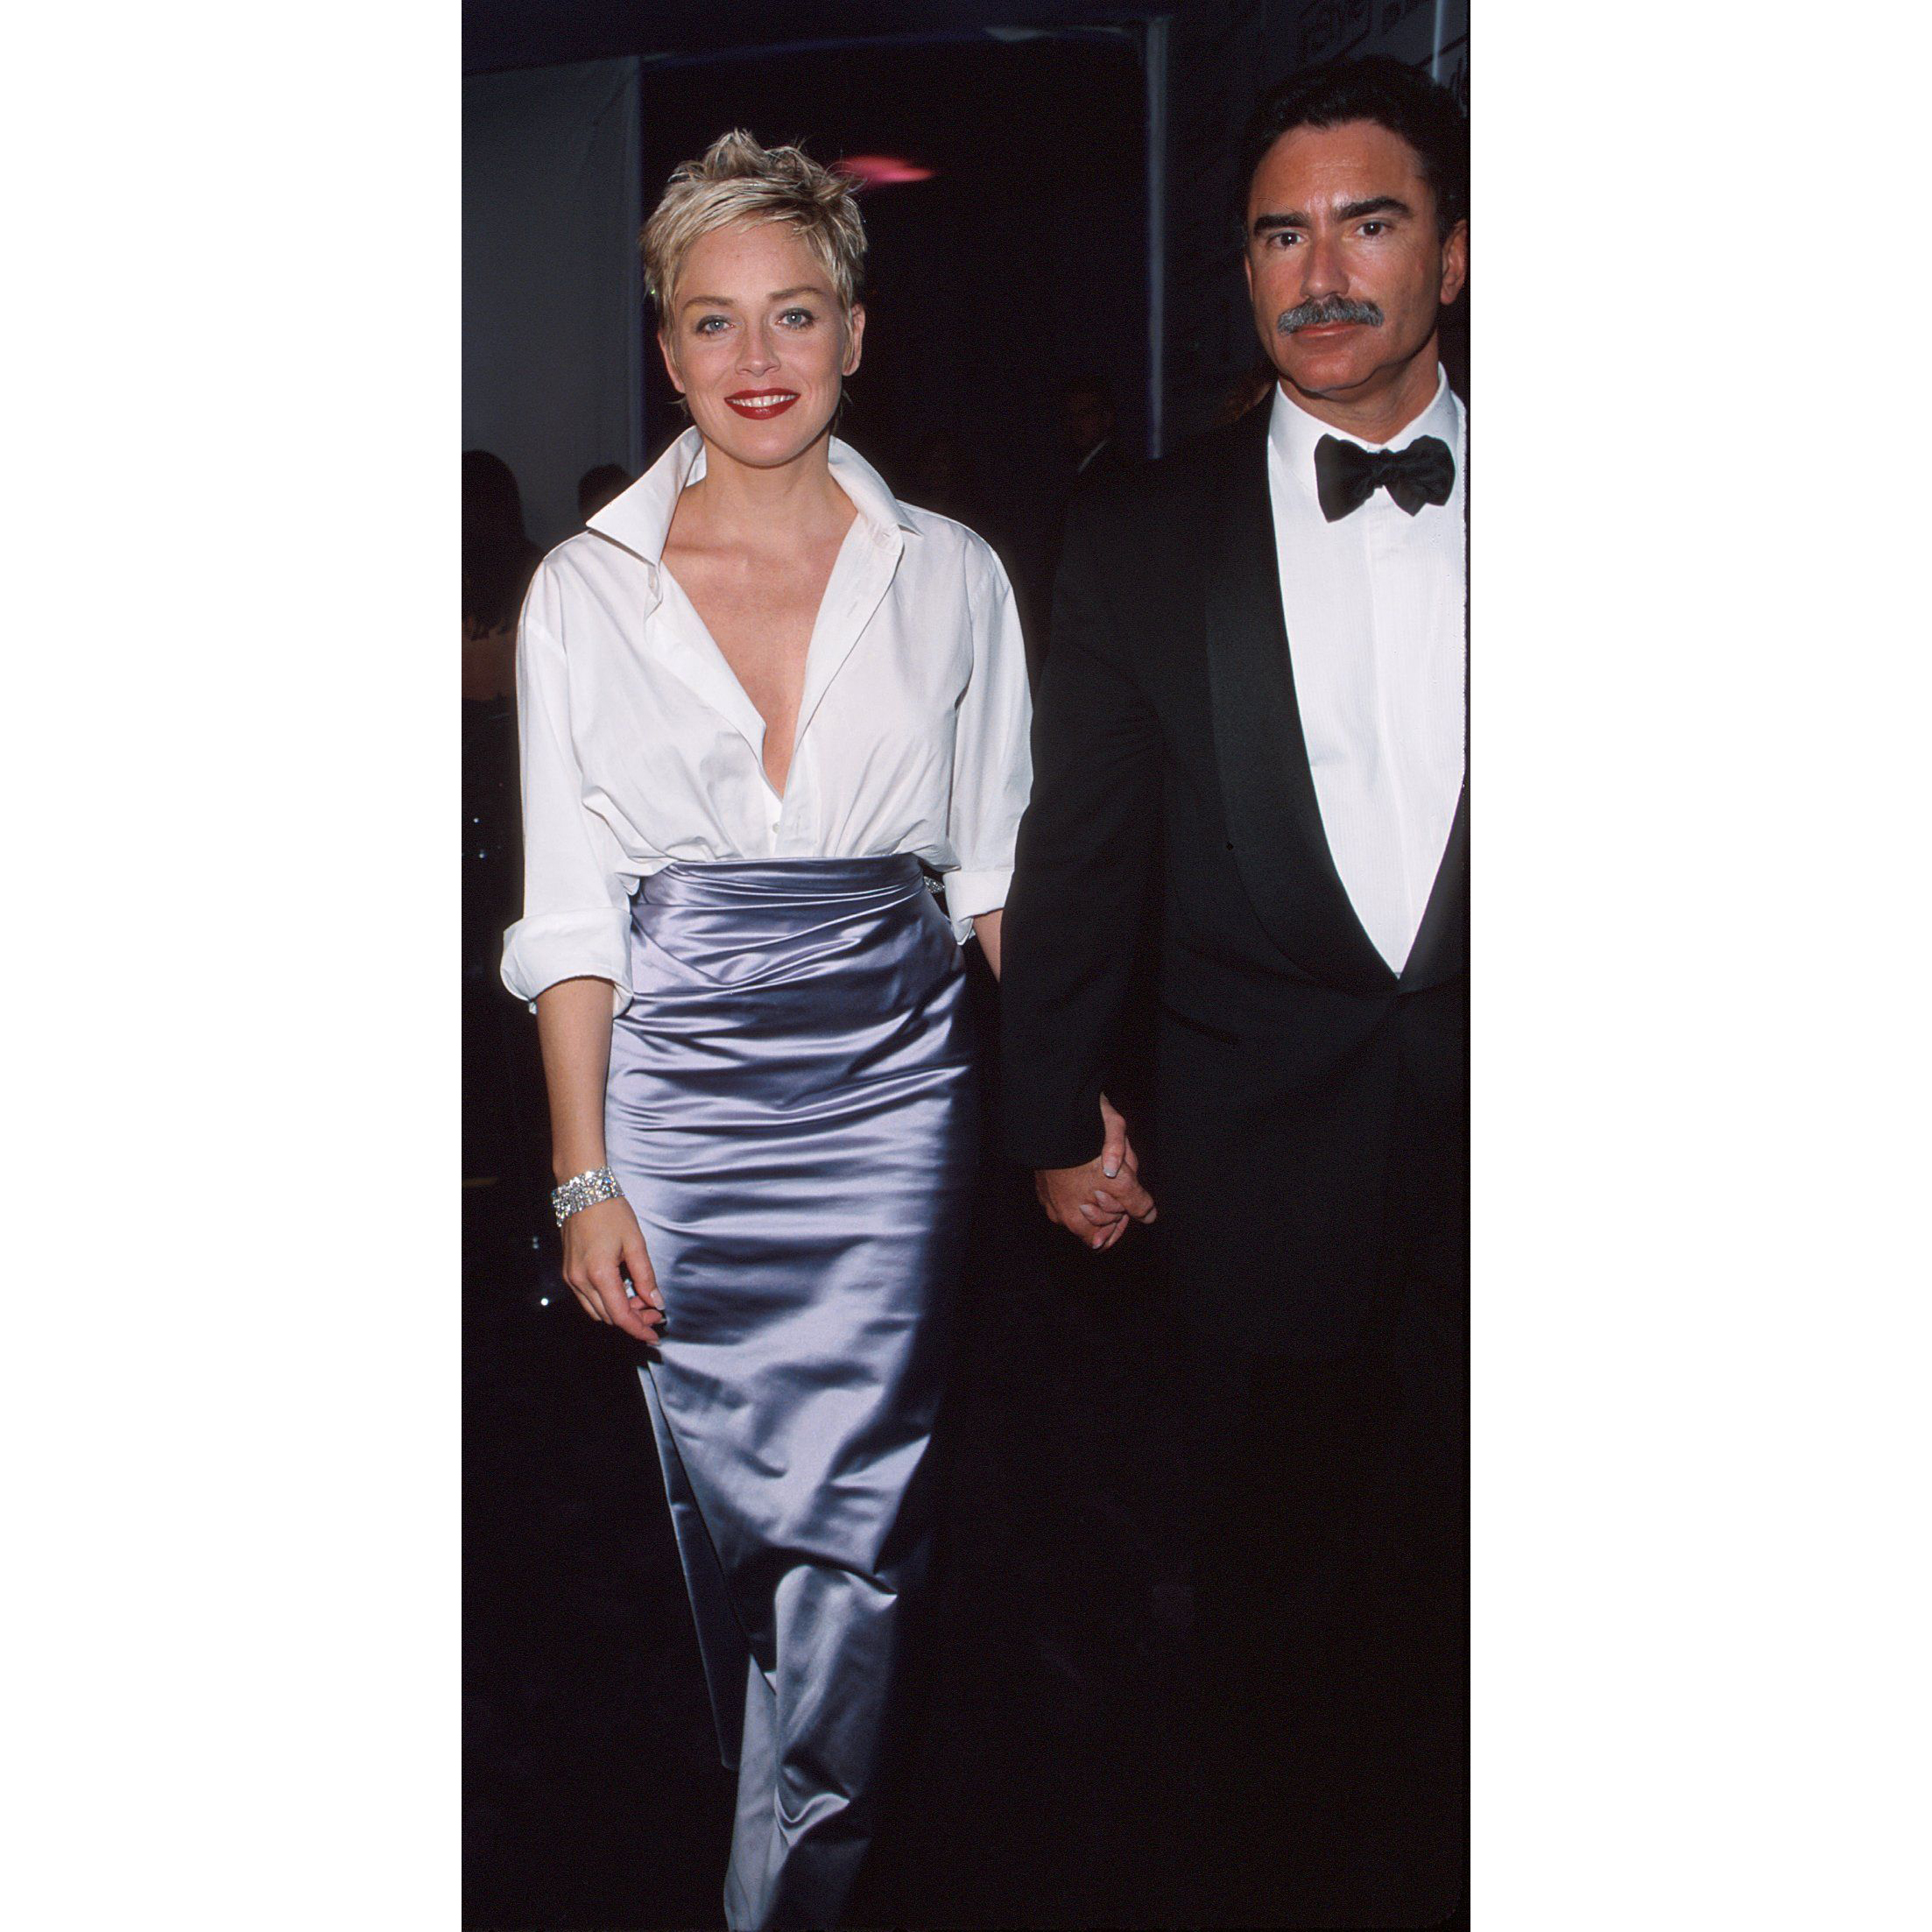 Sharon-Stone-Phil-Bronstein-1998-oscars